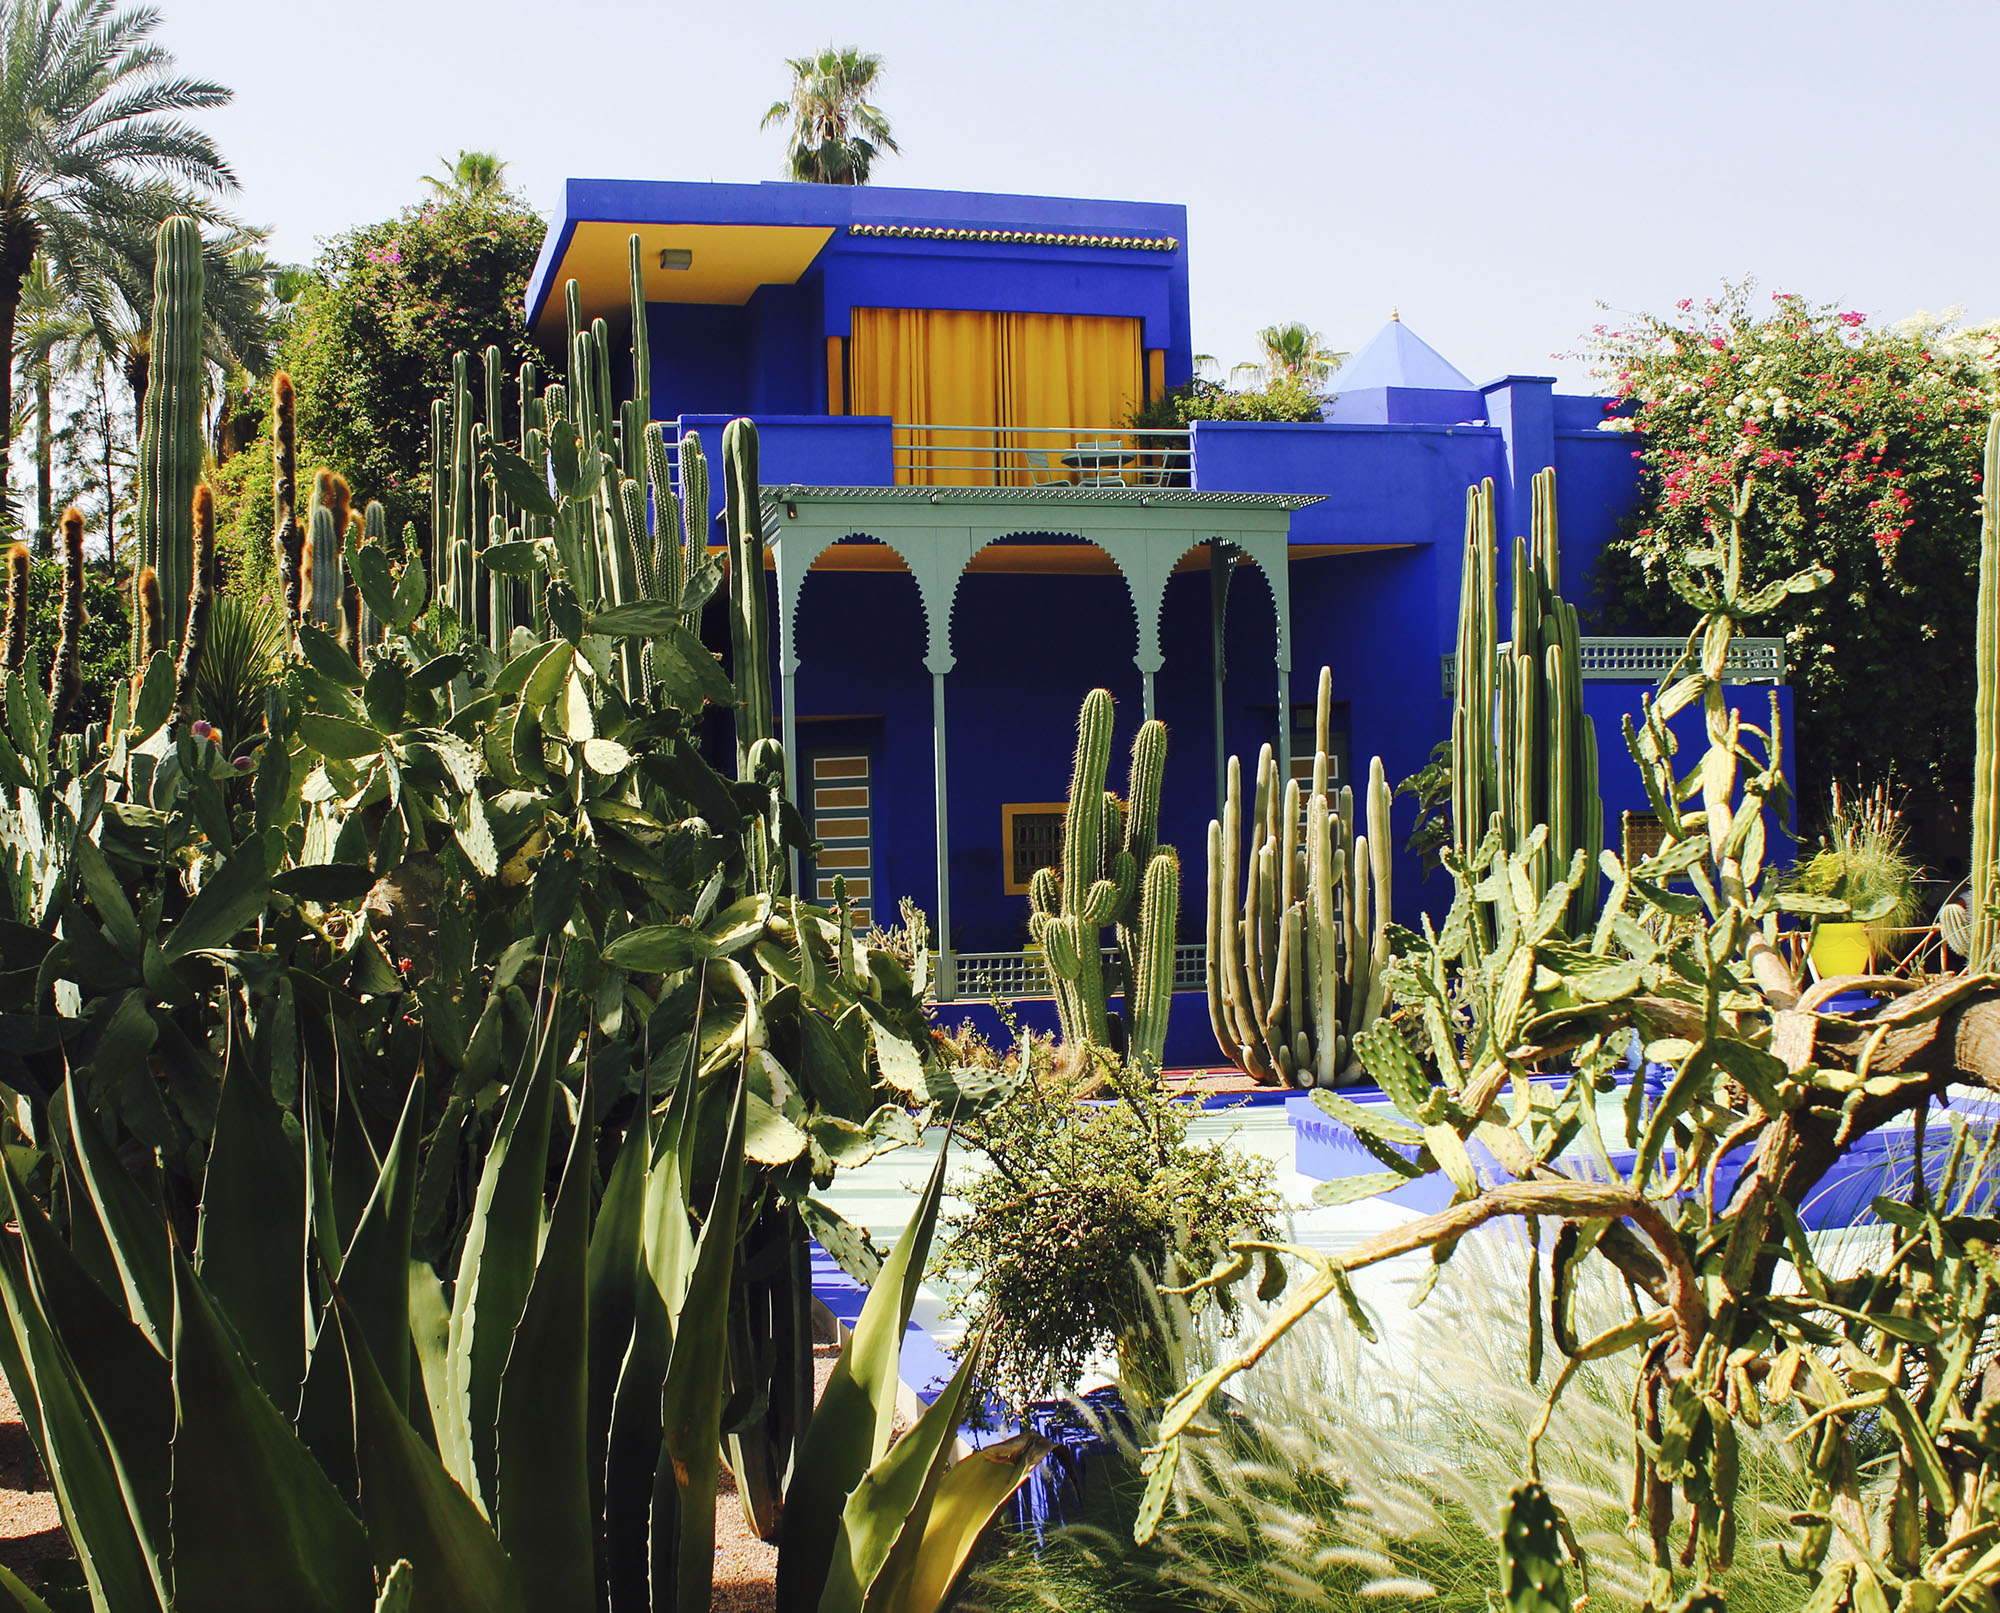 "DAY 5 - Today we will visit one of Morocco's most famous sites. Le Jardin Majorelle. It took French painter Jacques Majorelle (1886-1962) forty years of passion and dedication to create this enchanting garden in the heart of the ""Ochre City"". After getting our best shots from the garden, we will then head to the museum and learn more about the Berbers and their fascinating history. Later that afternoon we will also stop by the Yves Saint Laurent Museum."